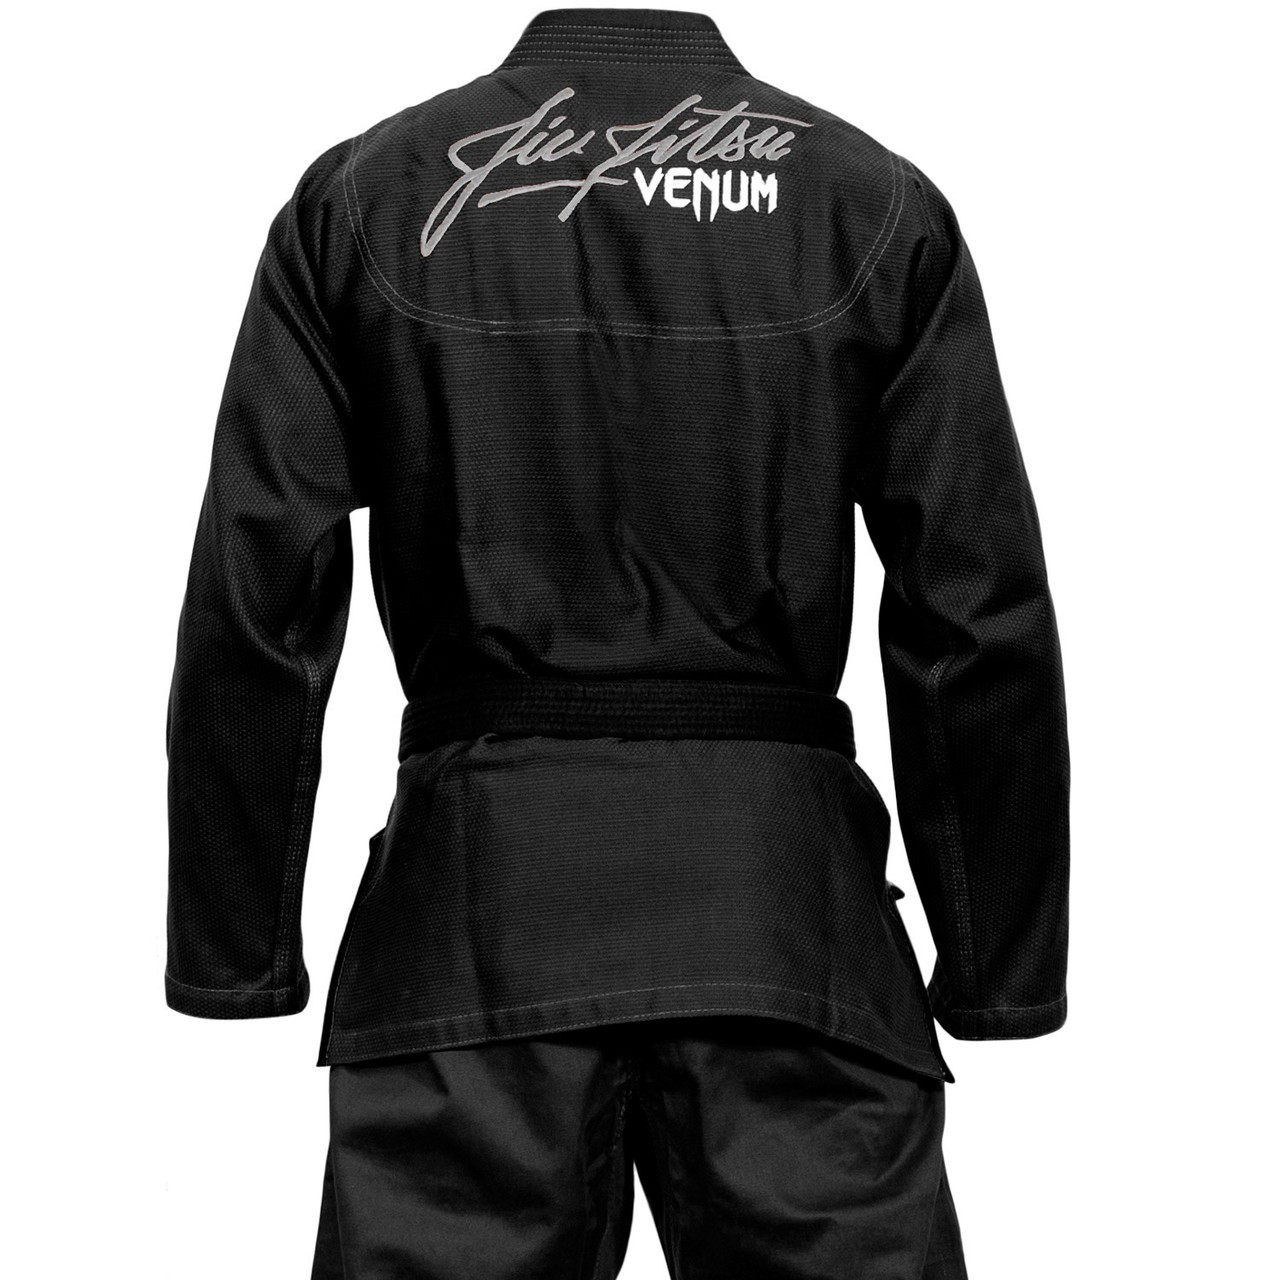 back view of the Venum challenger 3.0 BJJ Gi Black/Grey Available at www.thejiujitsushop.com  Enjoy Free Shipping from The Jiu Jitsu Shop today!